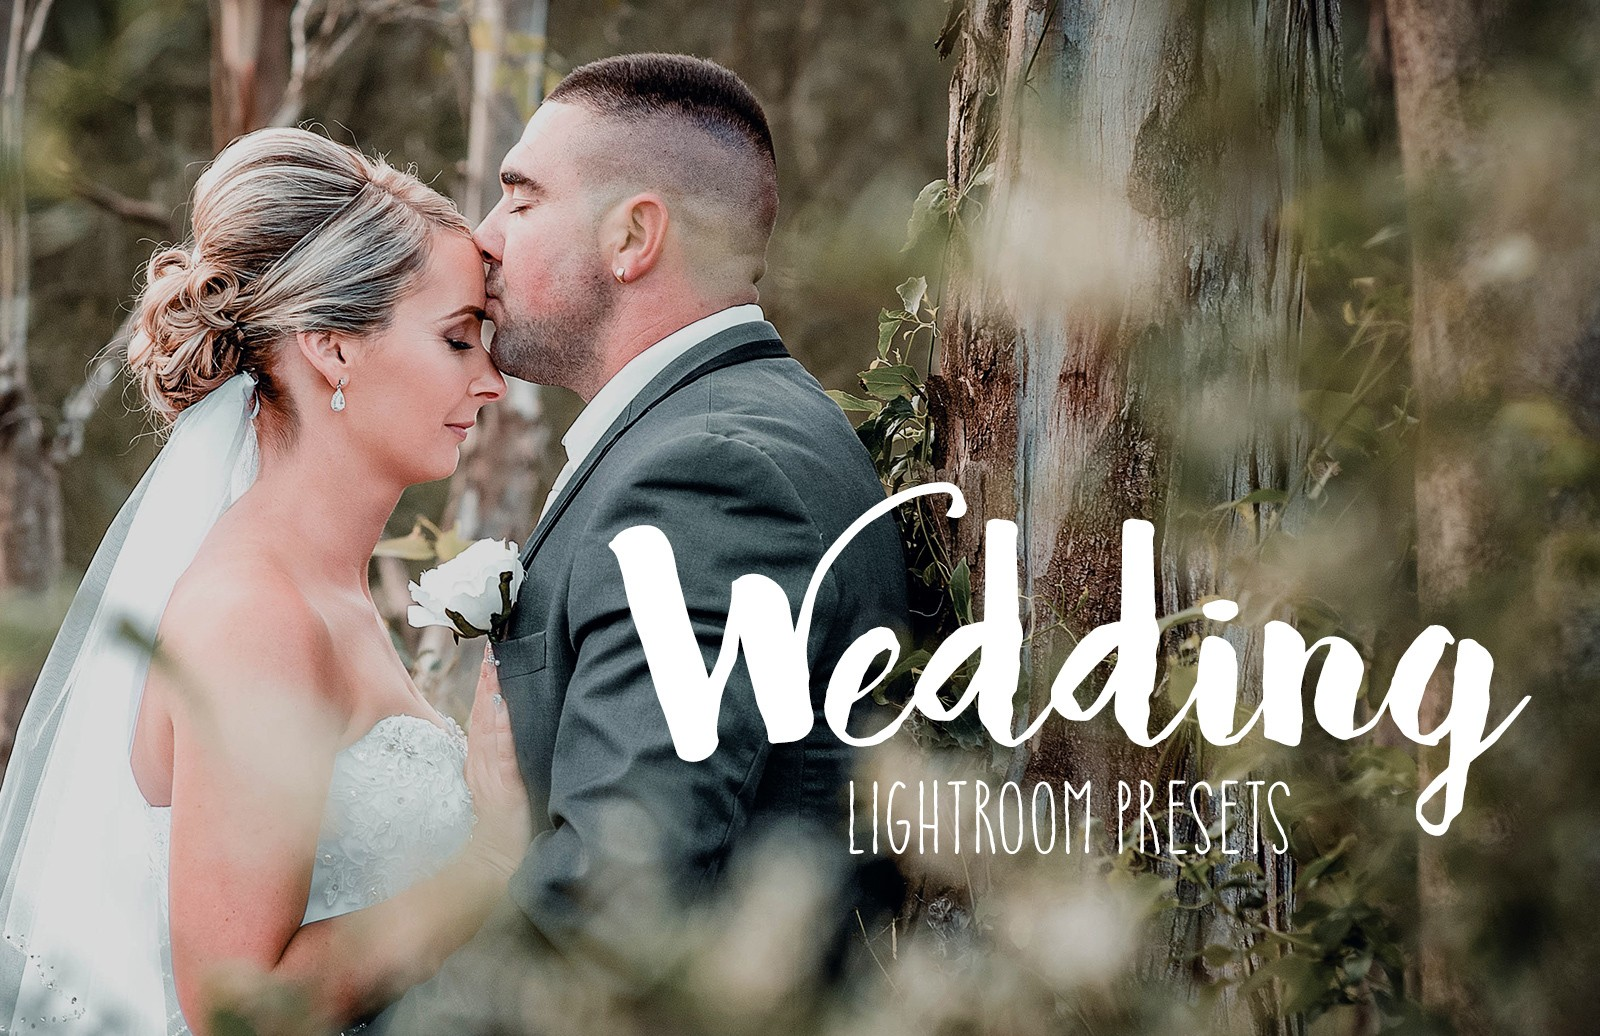 Wedding Lightroom Presets 1